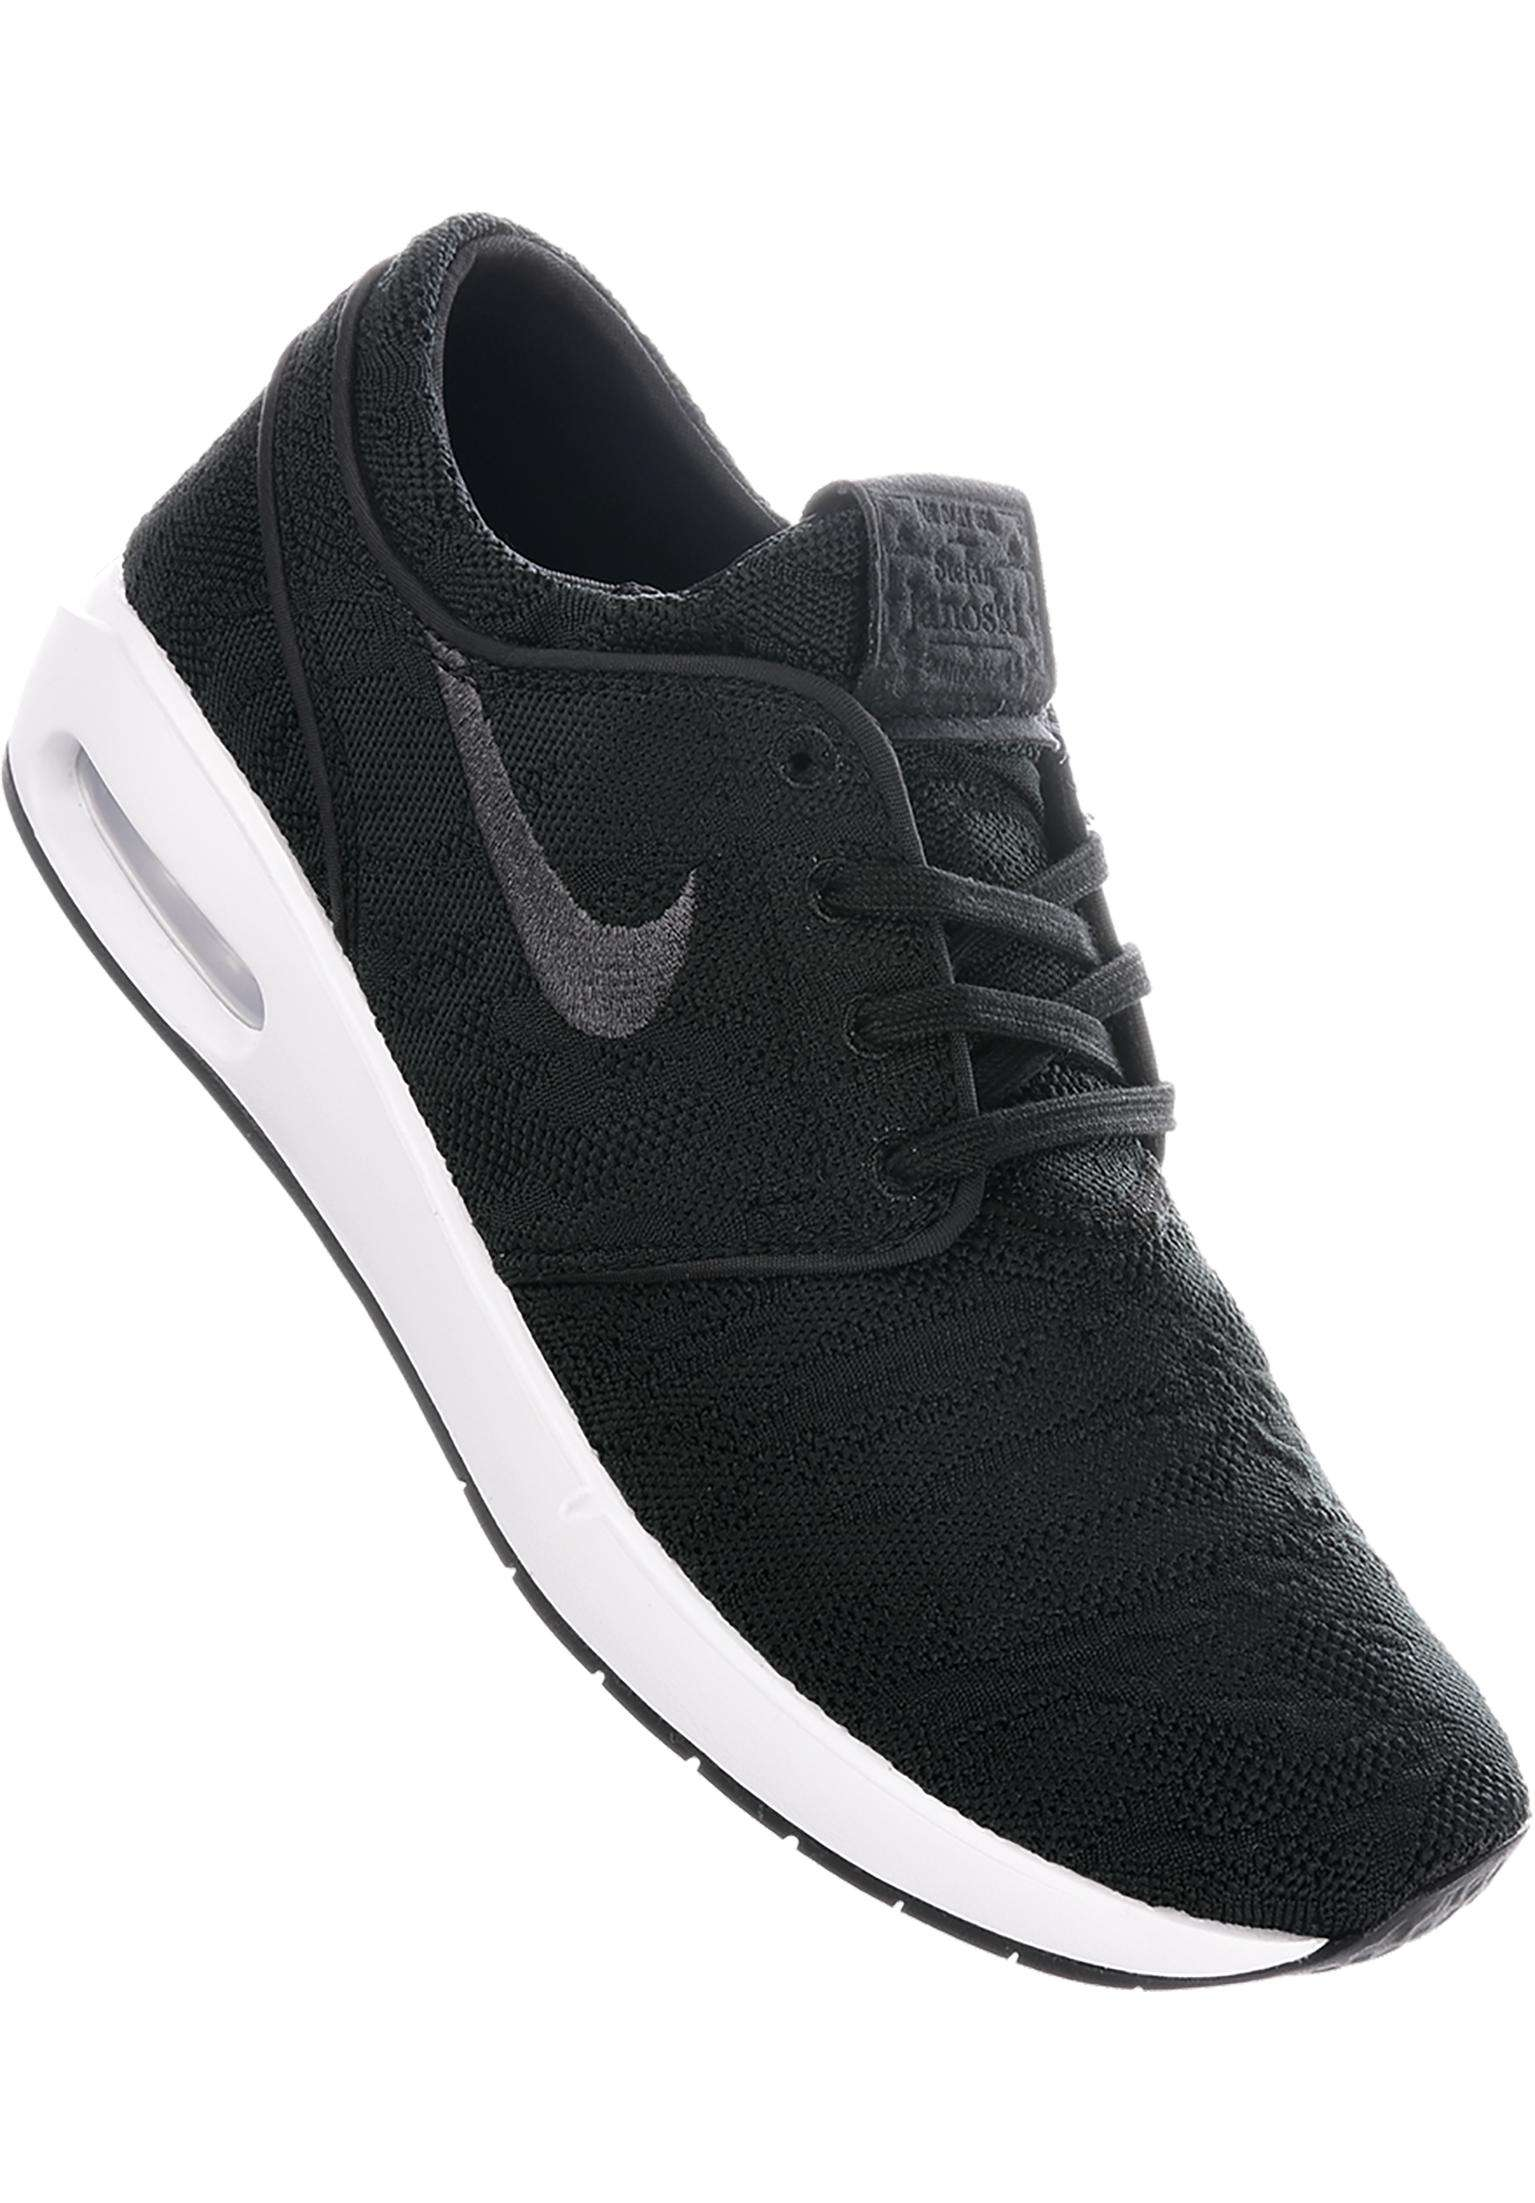 19fa53f217fb2 Air Max Janoski 2 Nike SB All Shoes in black-anthracite-white for Men |  Titus